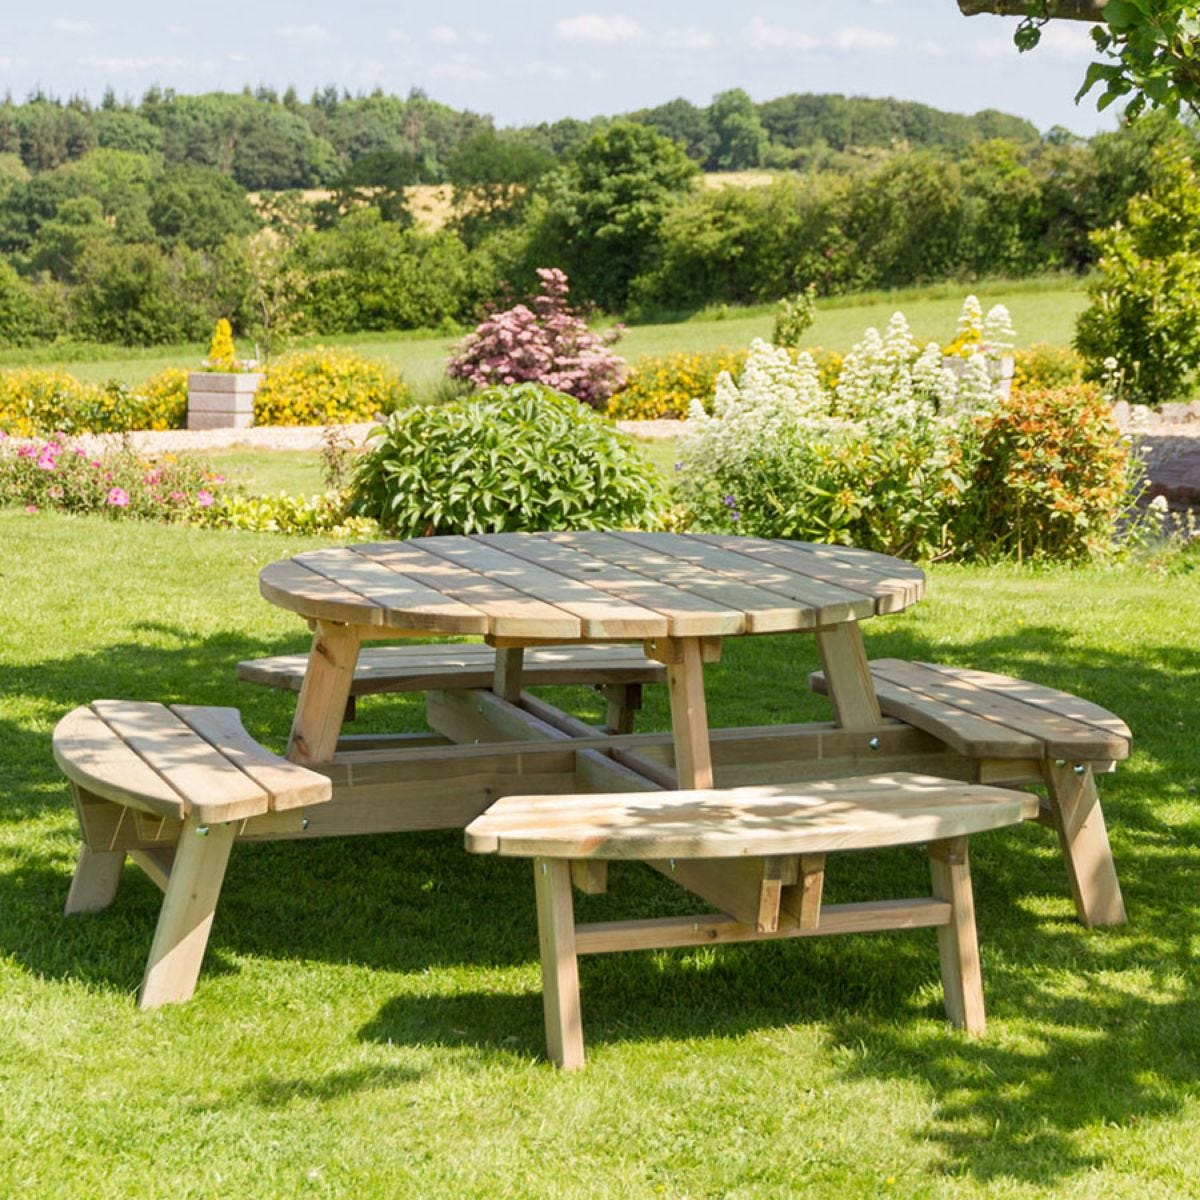 Zest4leisure Wooden Rose 8 Seater Round Picnic Table Robert Dyas